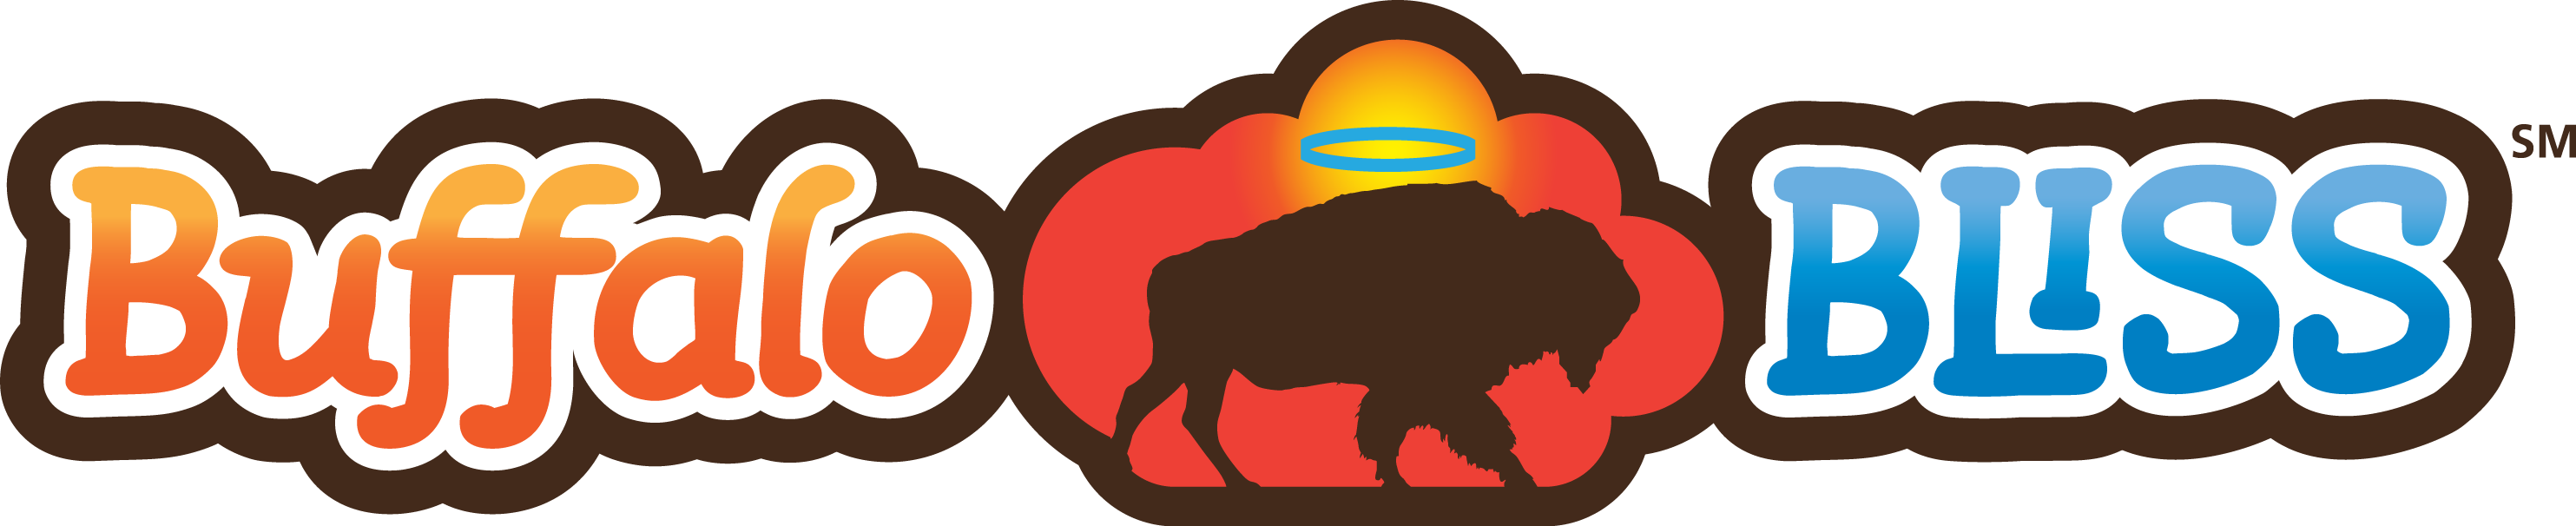 Yak clipart female buffalo. Wing zone designcoup prev